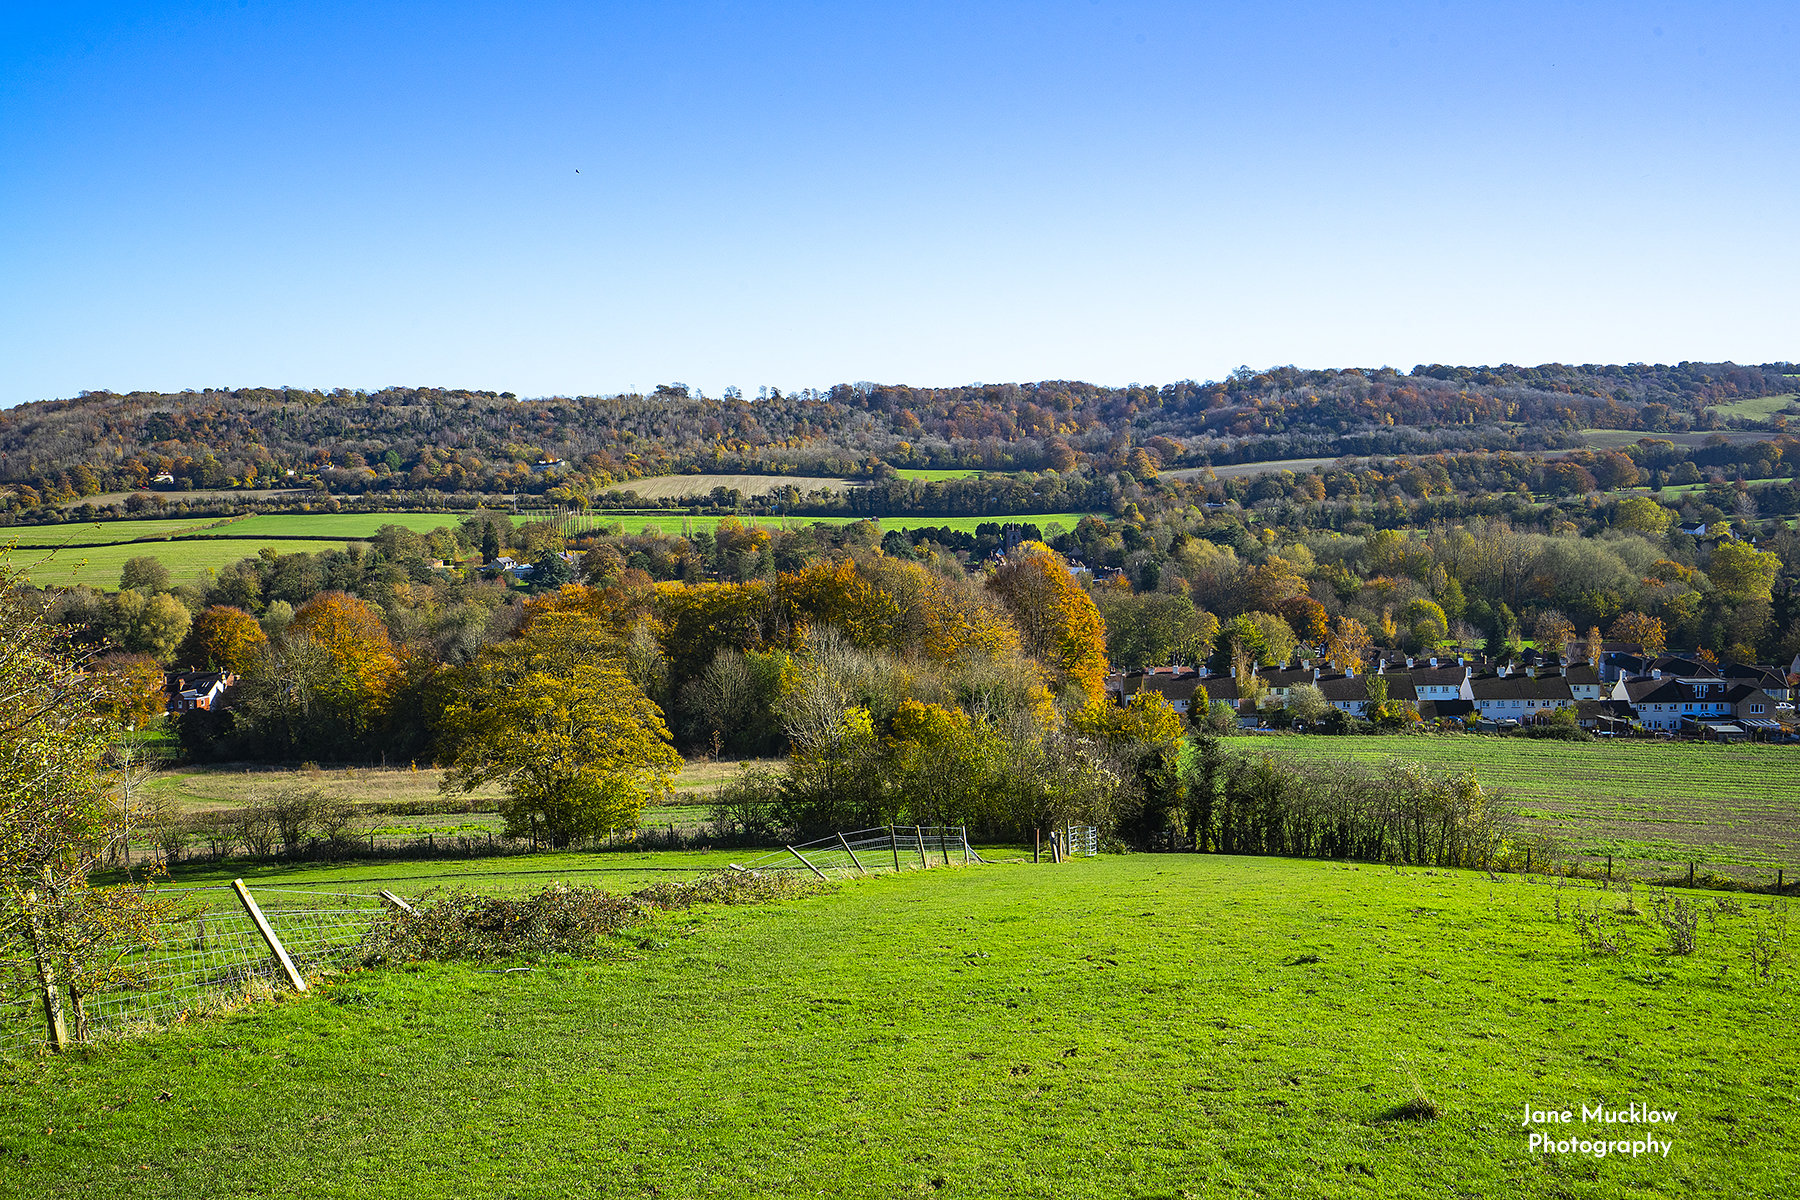 Photo of the view across Shoreham from Meenfield Wood, by Jane Mucklow